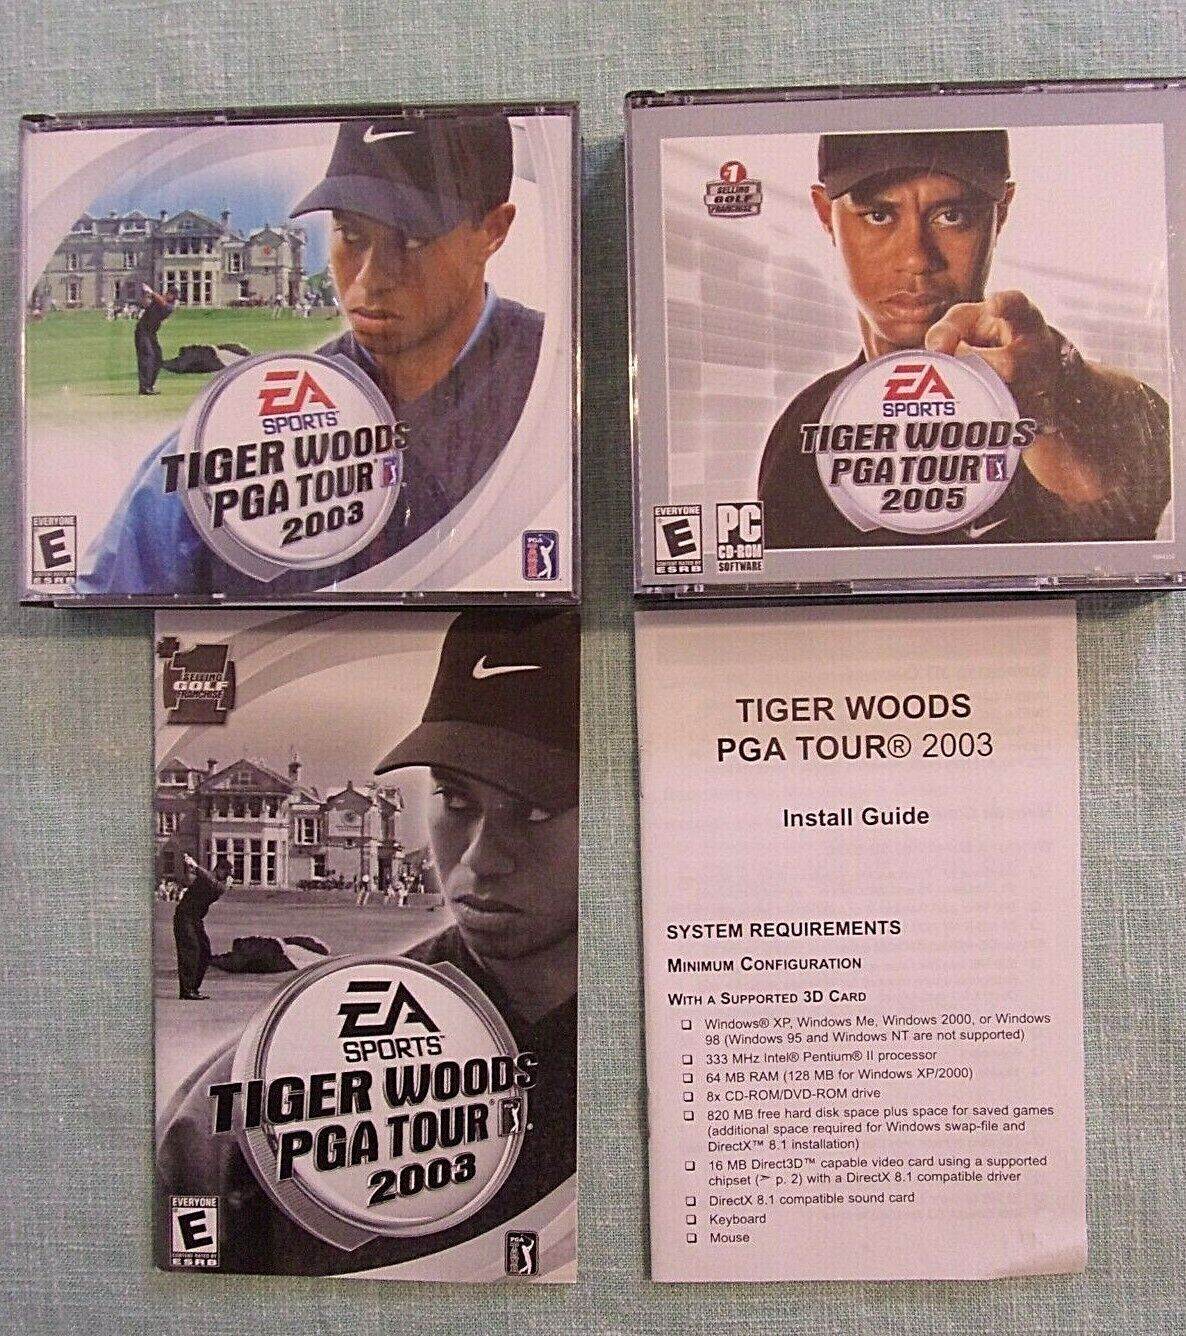 Computer Games - Tiger Woods PGA Tour 2003 & 2005 PC CD-ROM Golf Computer Games